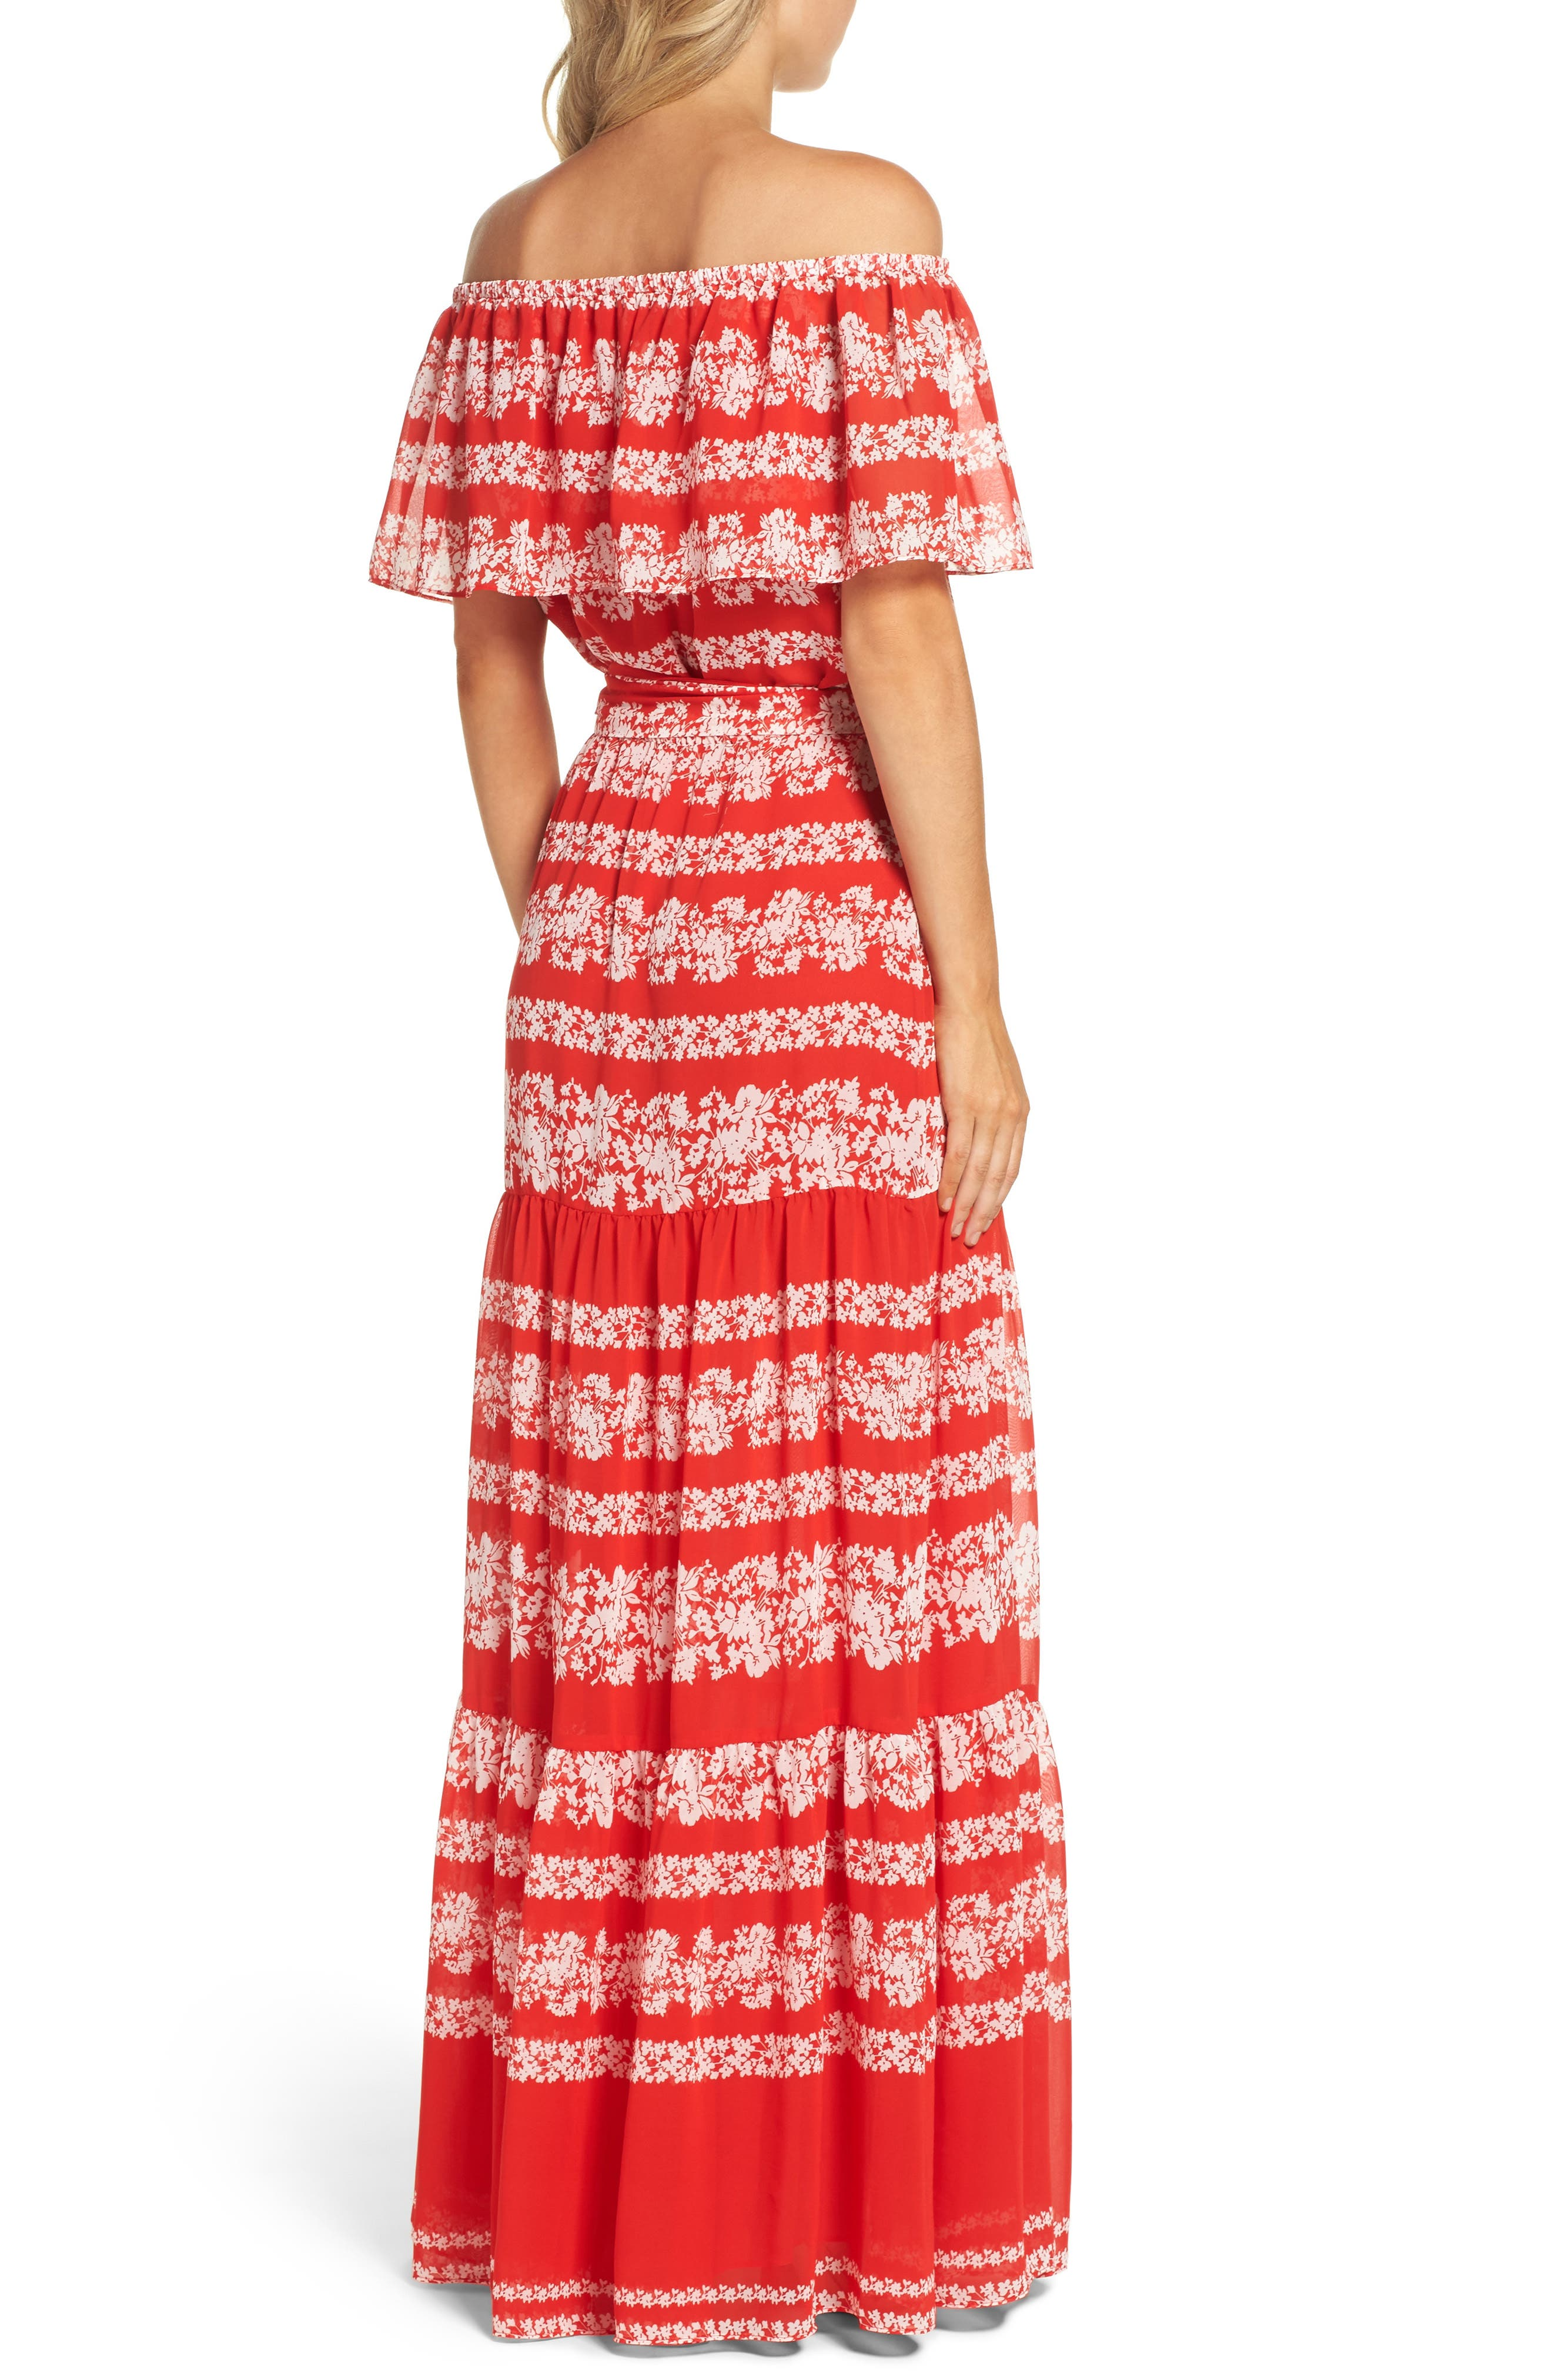 Off the Shoulder Maxi Dress,                             Alternate thumbnail 2, color,                             Red/ Ivory